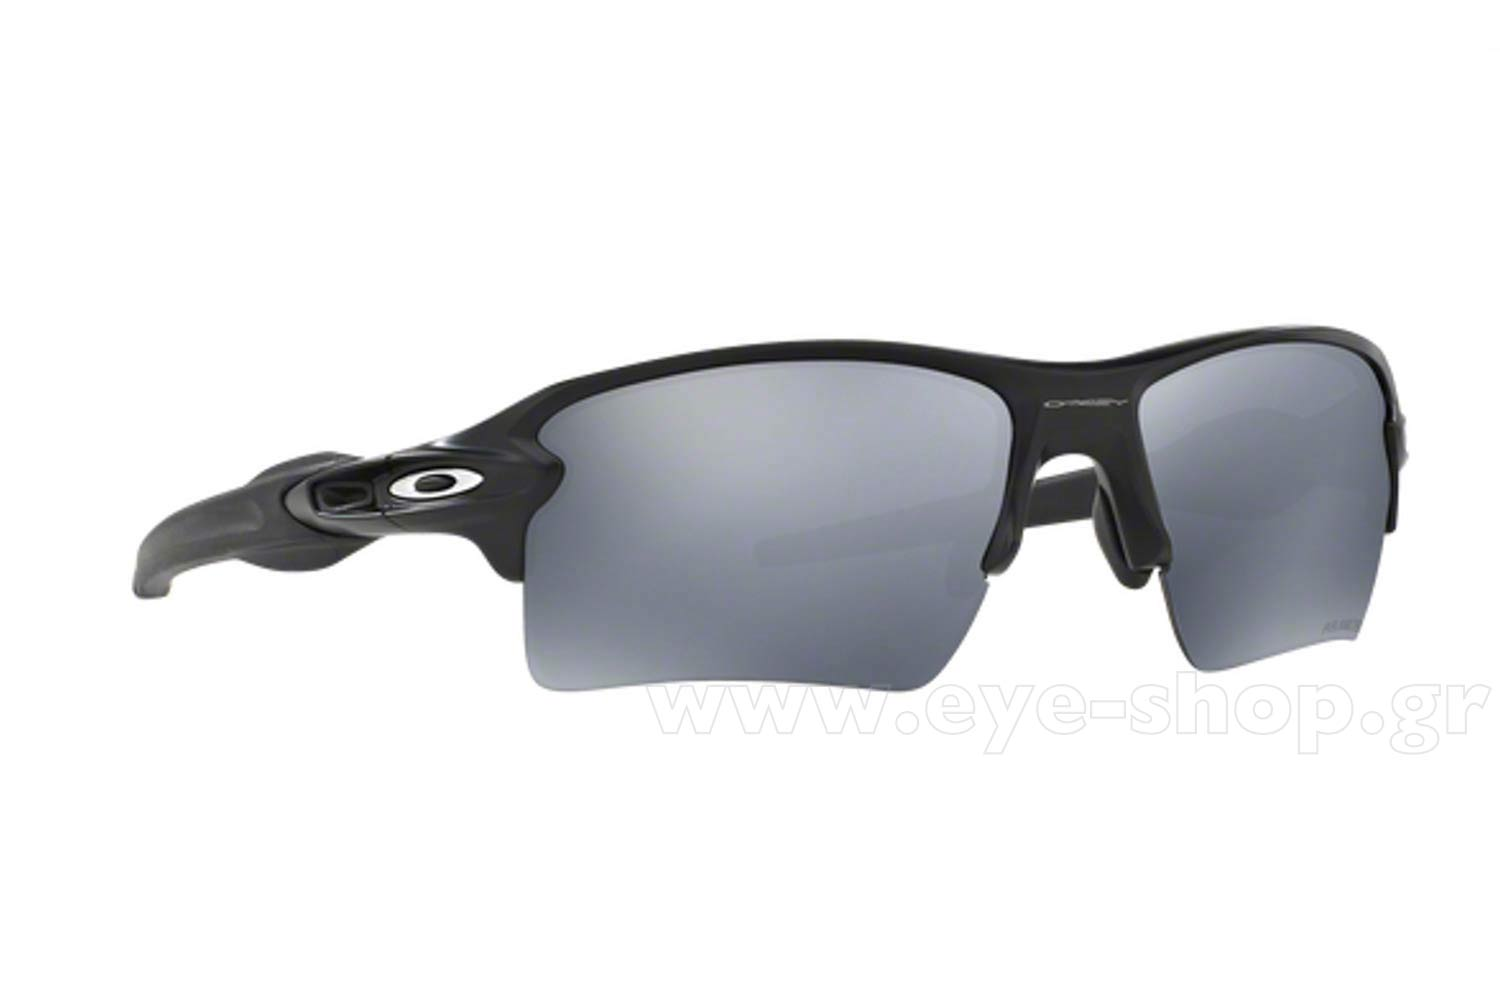 Γυαλιά Oakley FLAK 2.0 XL 9188 53 Mt Black Blk Iridium Polarized